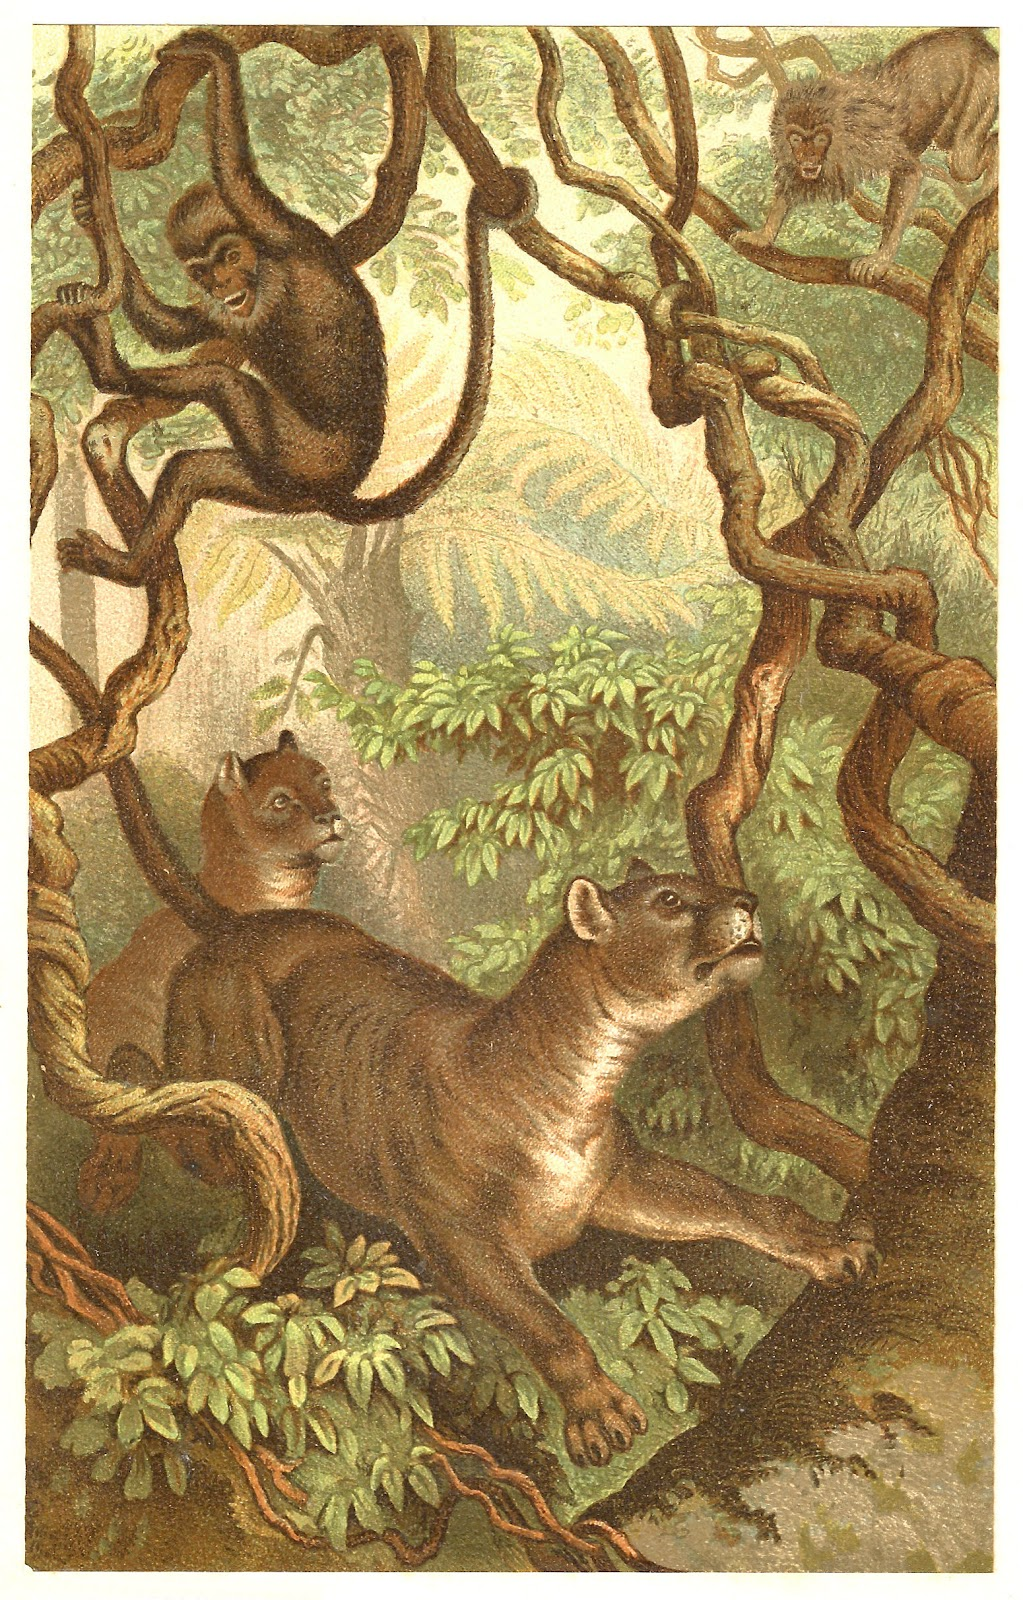 Antique images free animal graphic victorian for Classic jungle house for small animals